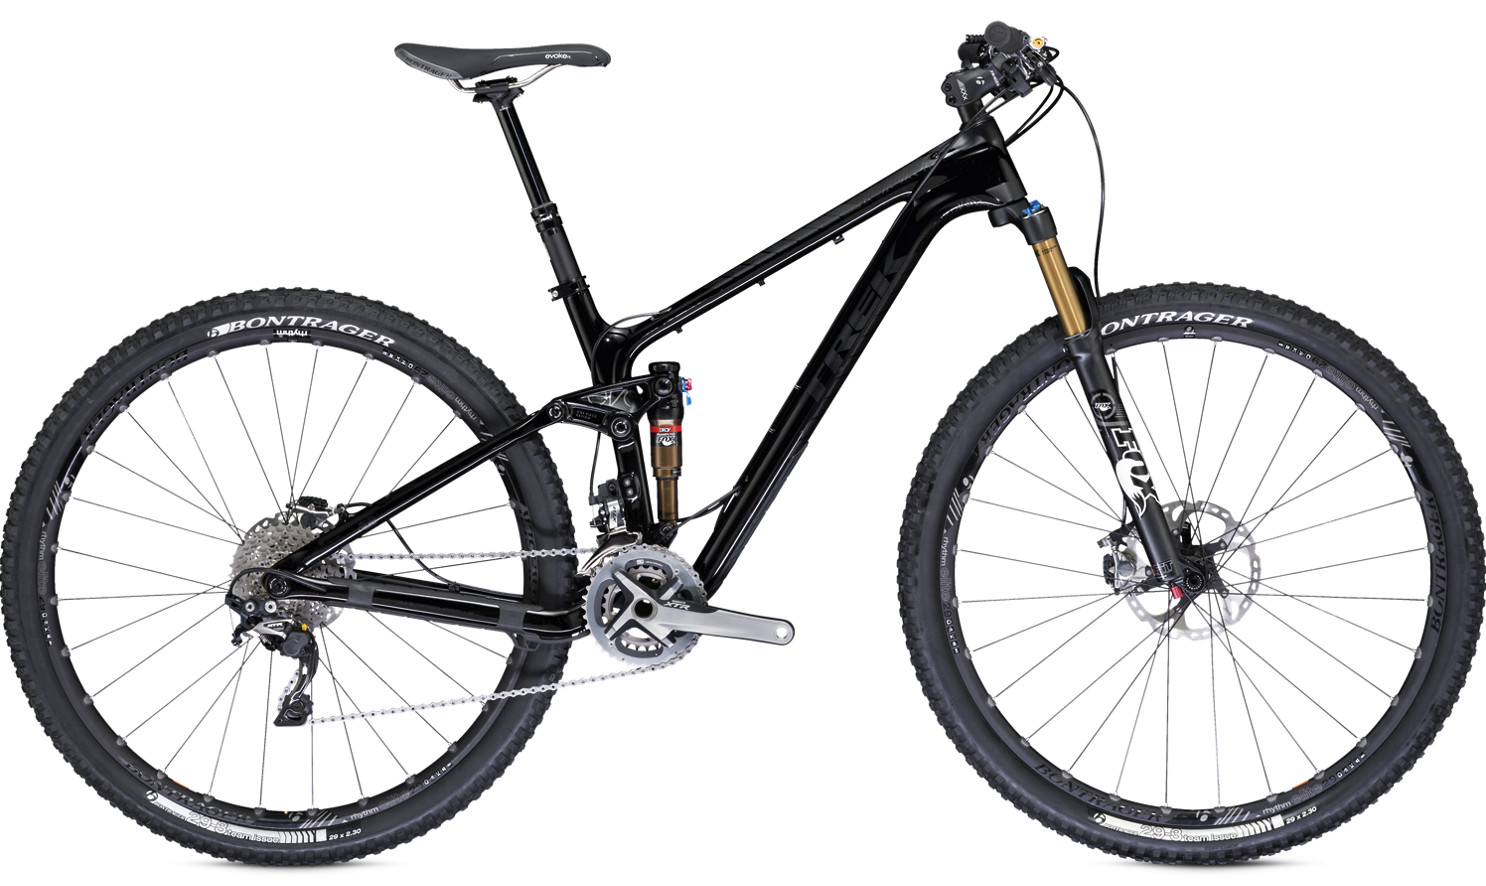 2014 Trek Fuel EX 9.9 29 with XTR  2014 Trek Fuel EX 9.9 29 with XTR